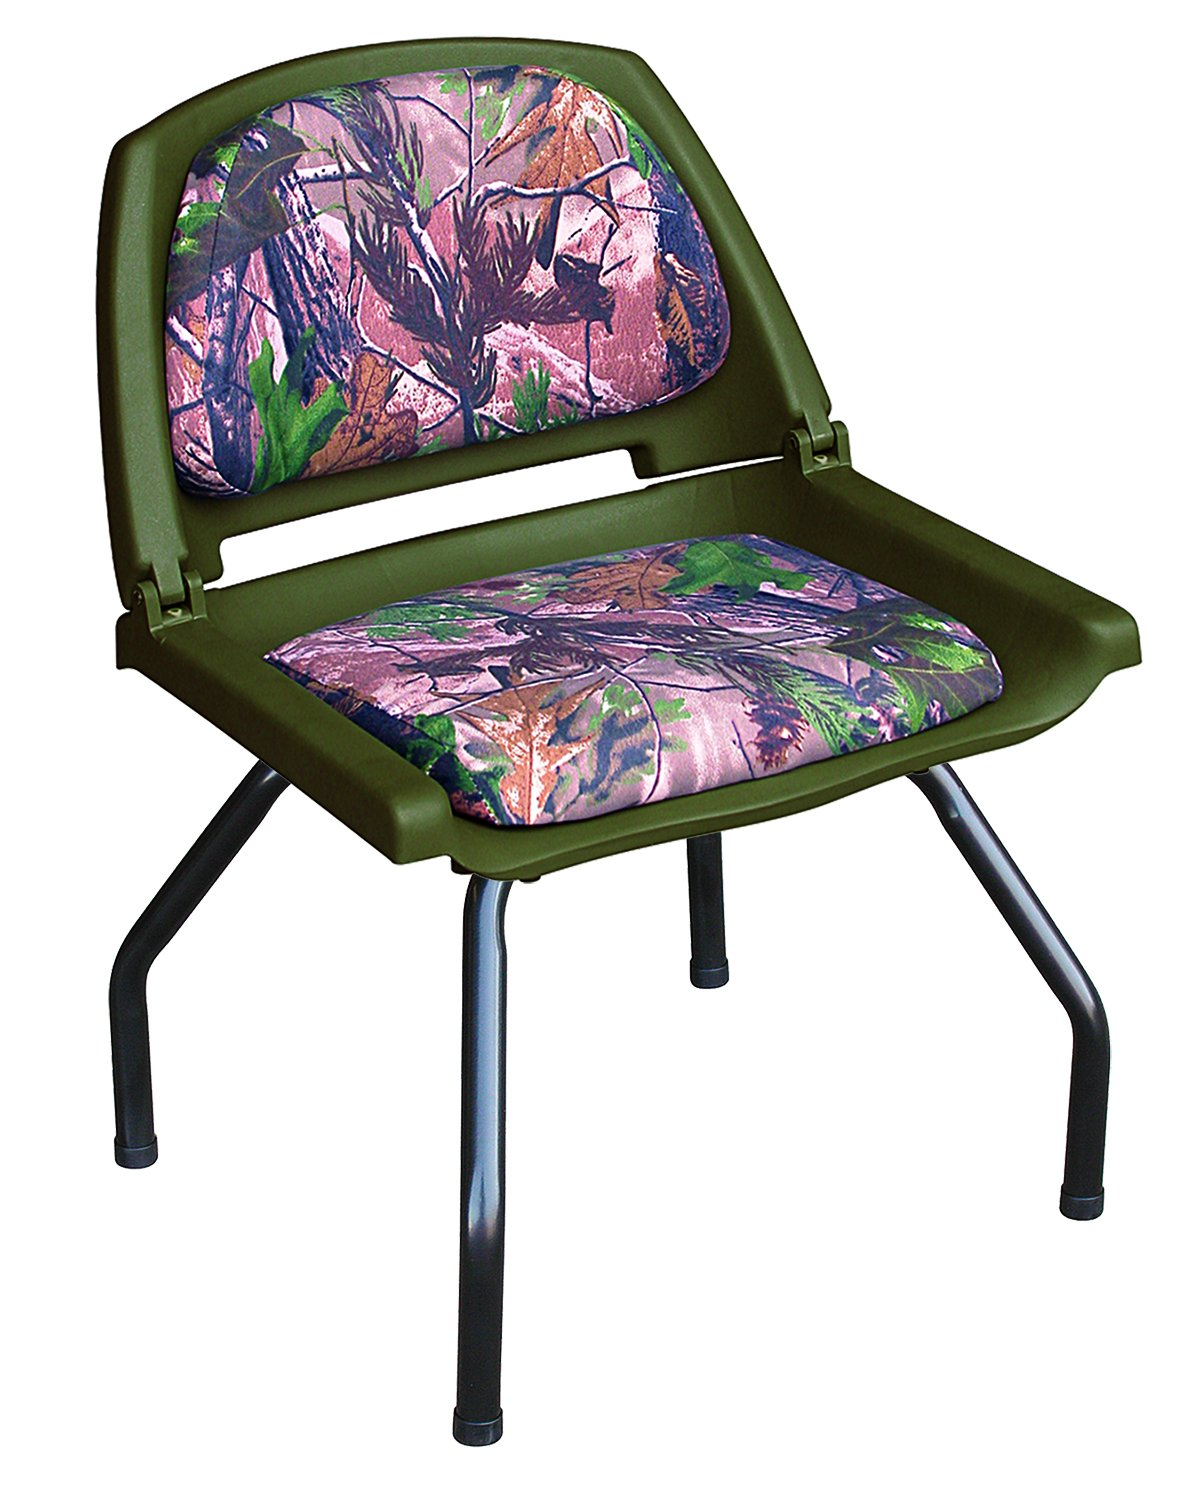 Wise Outdoors 8WD302-762 Hunting Blind Seat Combo, with Seat Stand and Swivel, Realtree All Purpose Green Camo